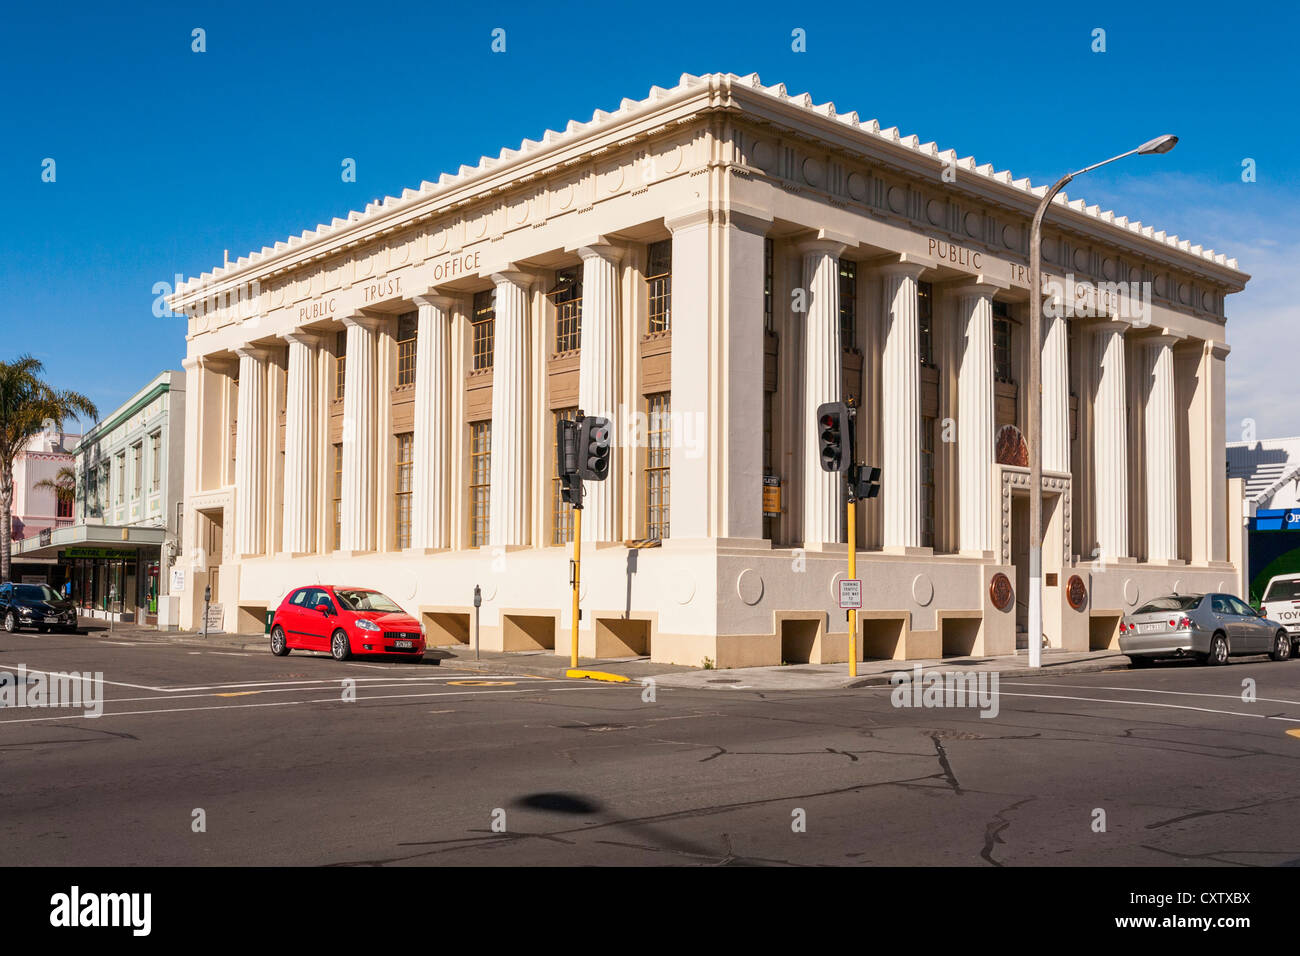 The Public Trust Office was one of the few buildings left standing in the centre of Napier, New Zealand, - Stock Image